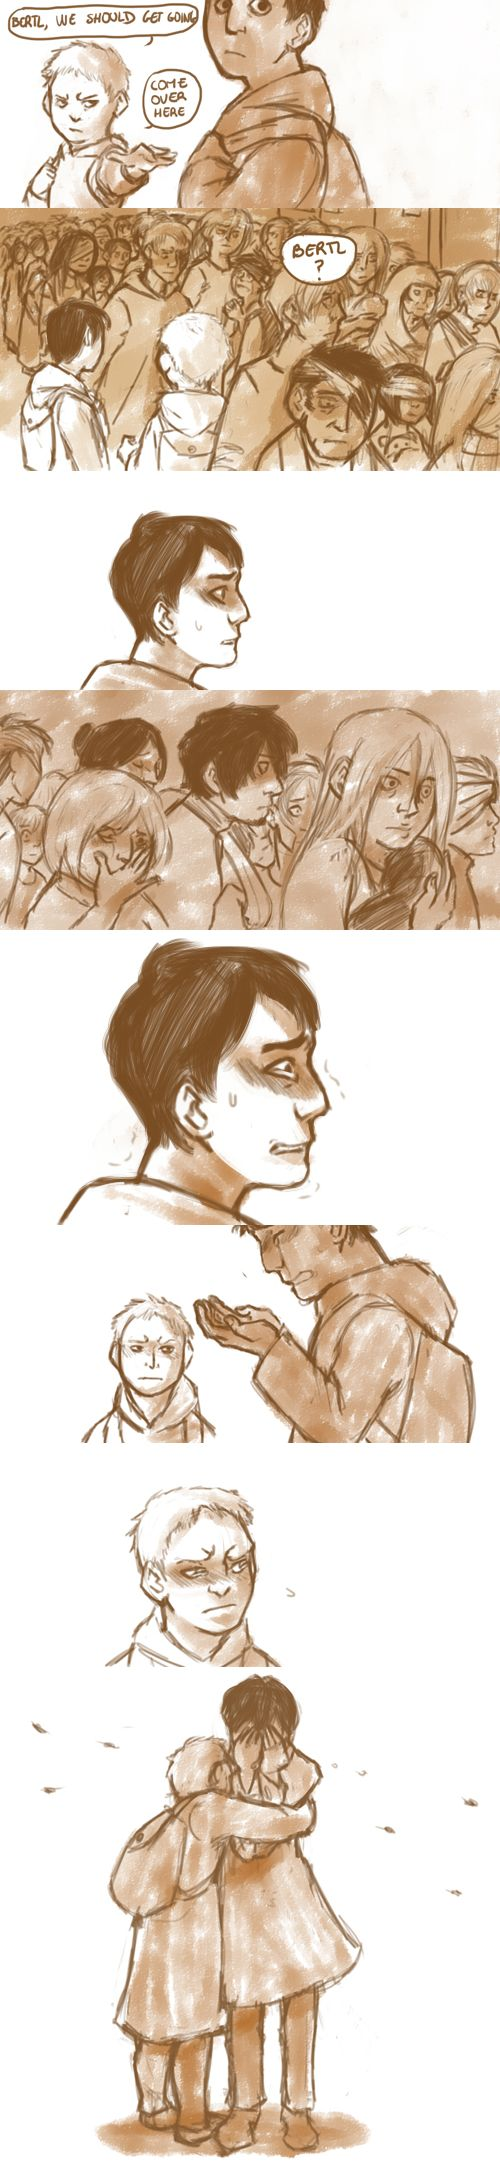 Reiner and Bertholdt. Bertholt u ass u literally made all this shit happen. I don't like u anymore after chapter 82 oOPS SORRY NOT SORRY BITCH